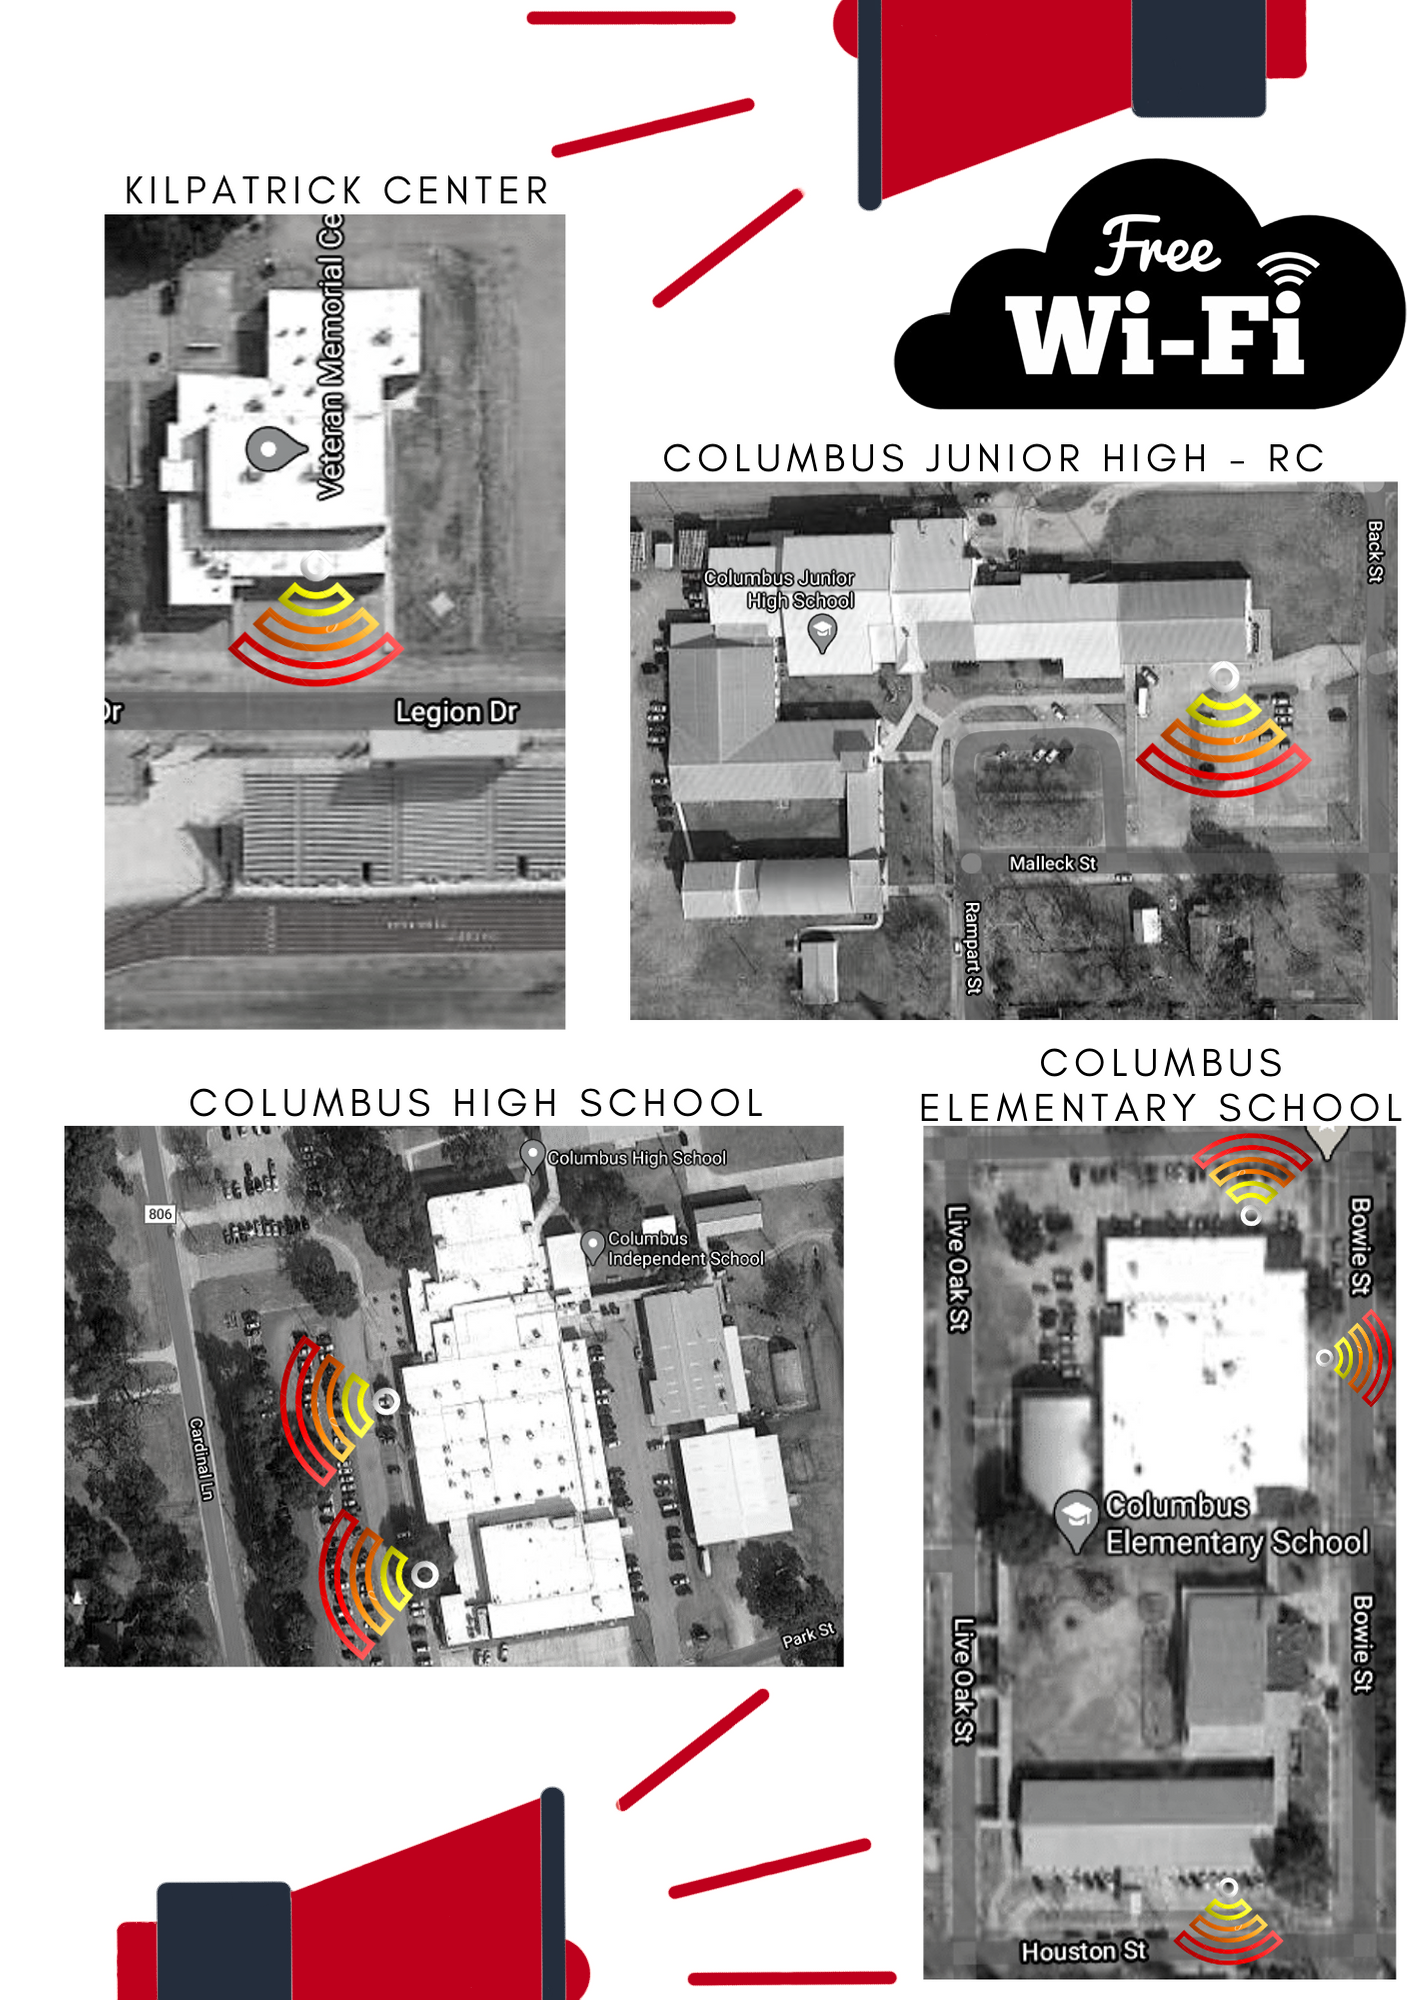 wifi flyer page 2